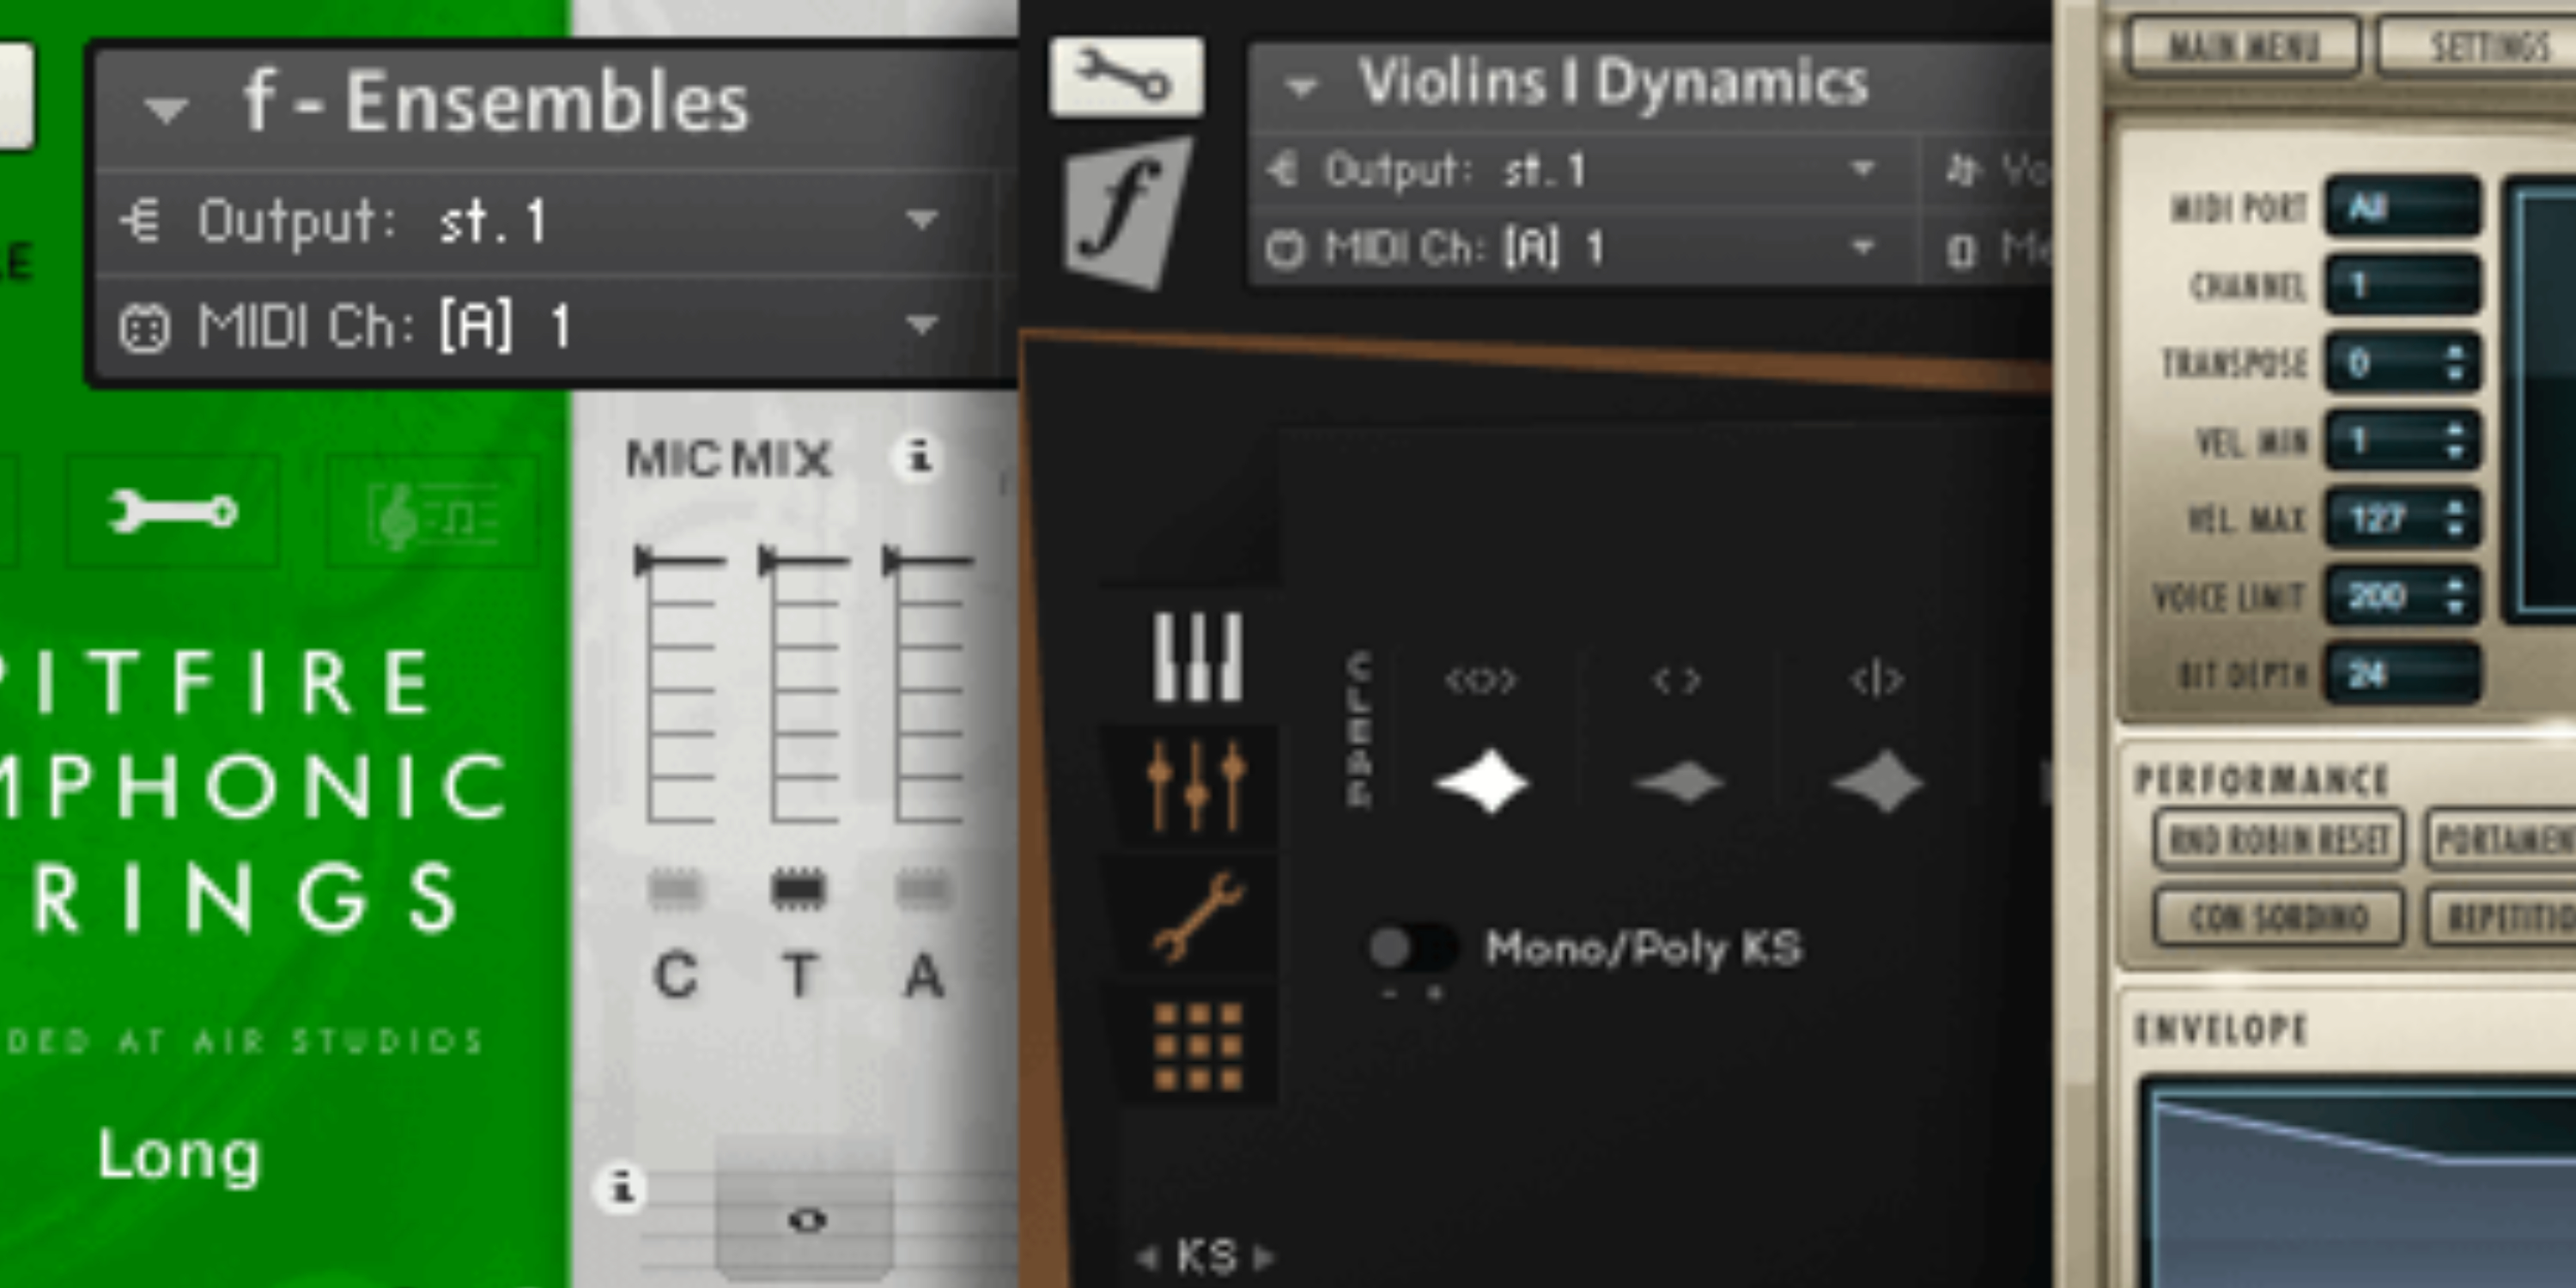 Orchestral String Libraries Compared [Updated]